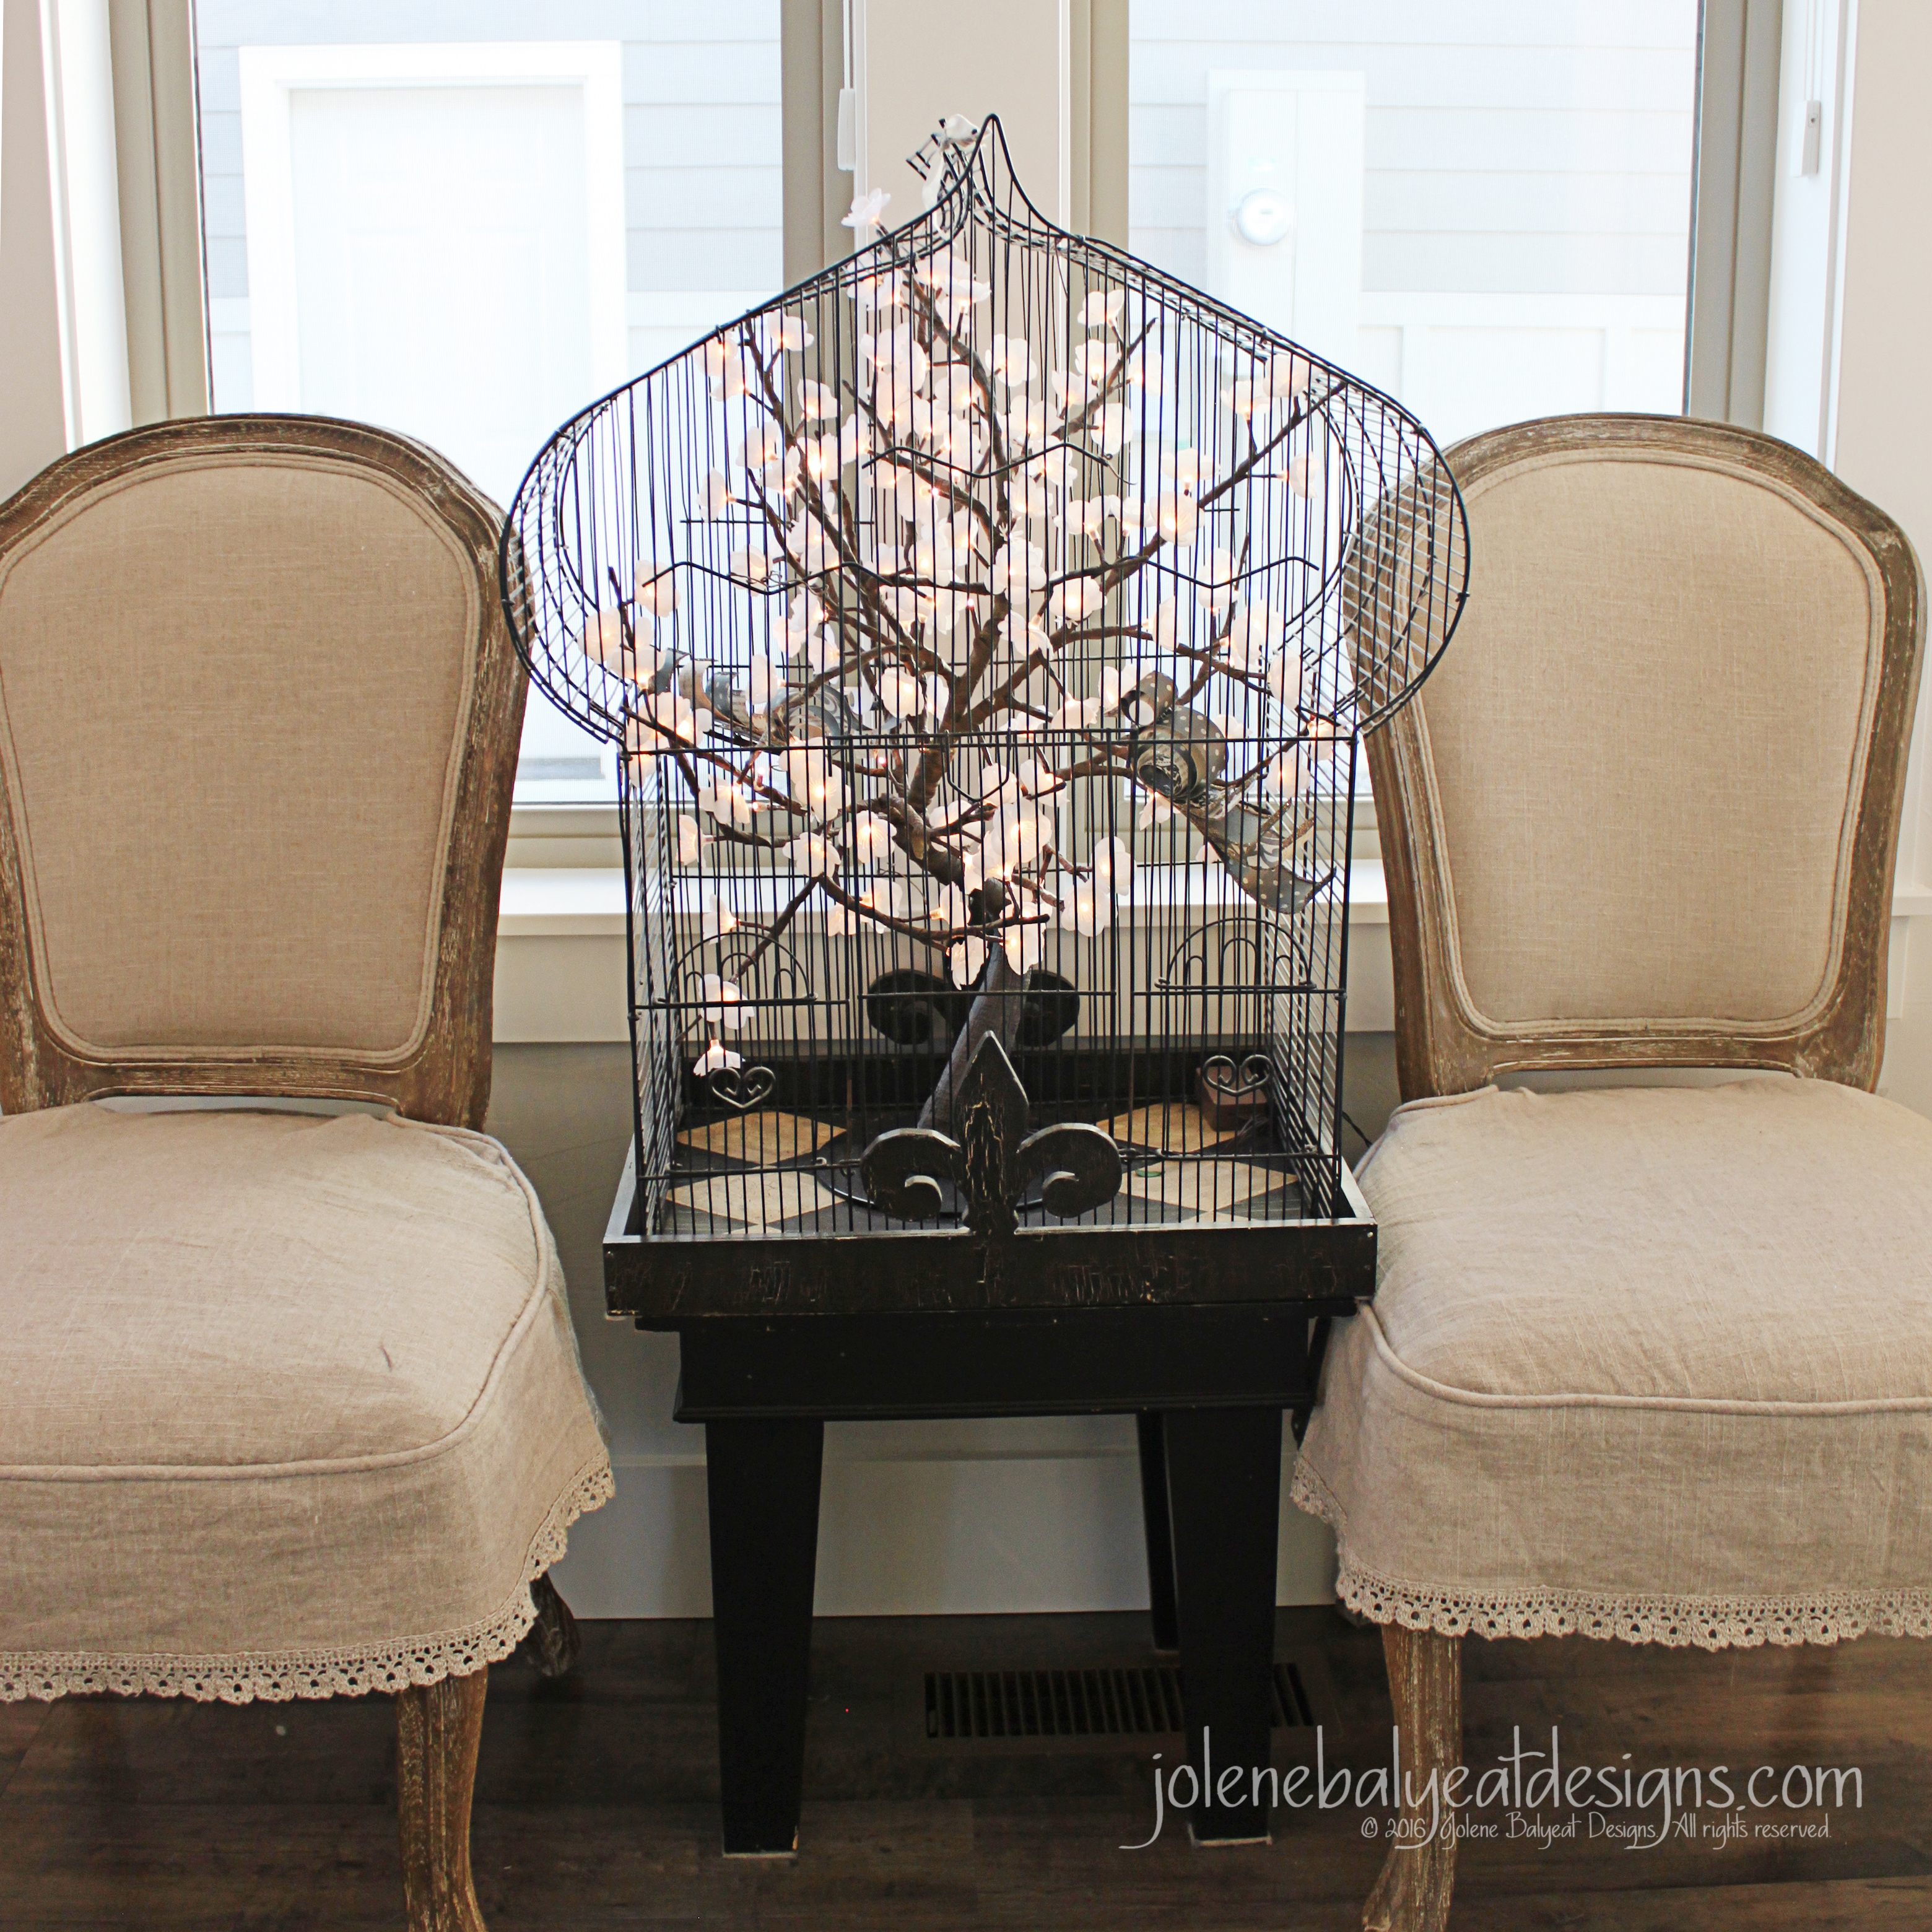 Bird Cage and Chairs